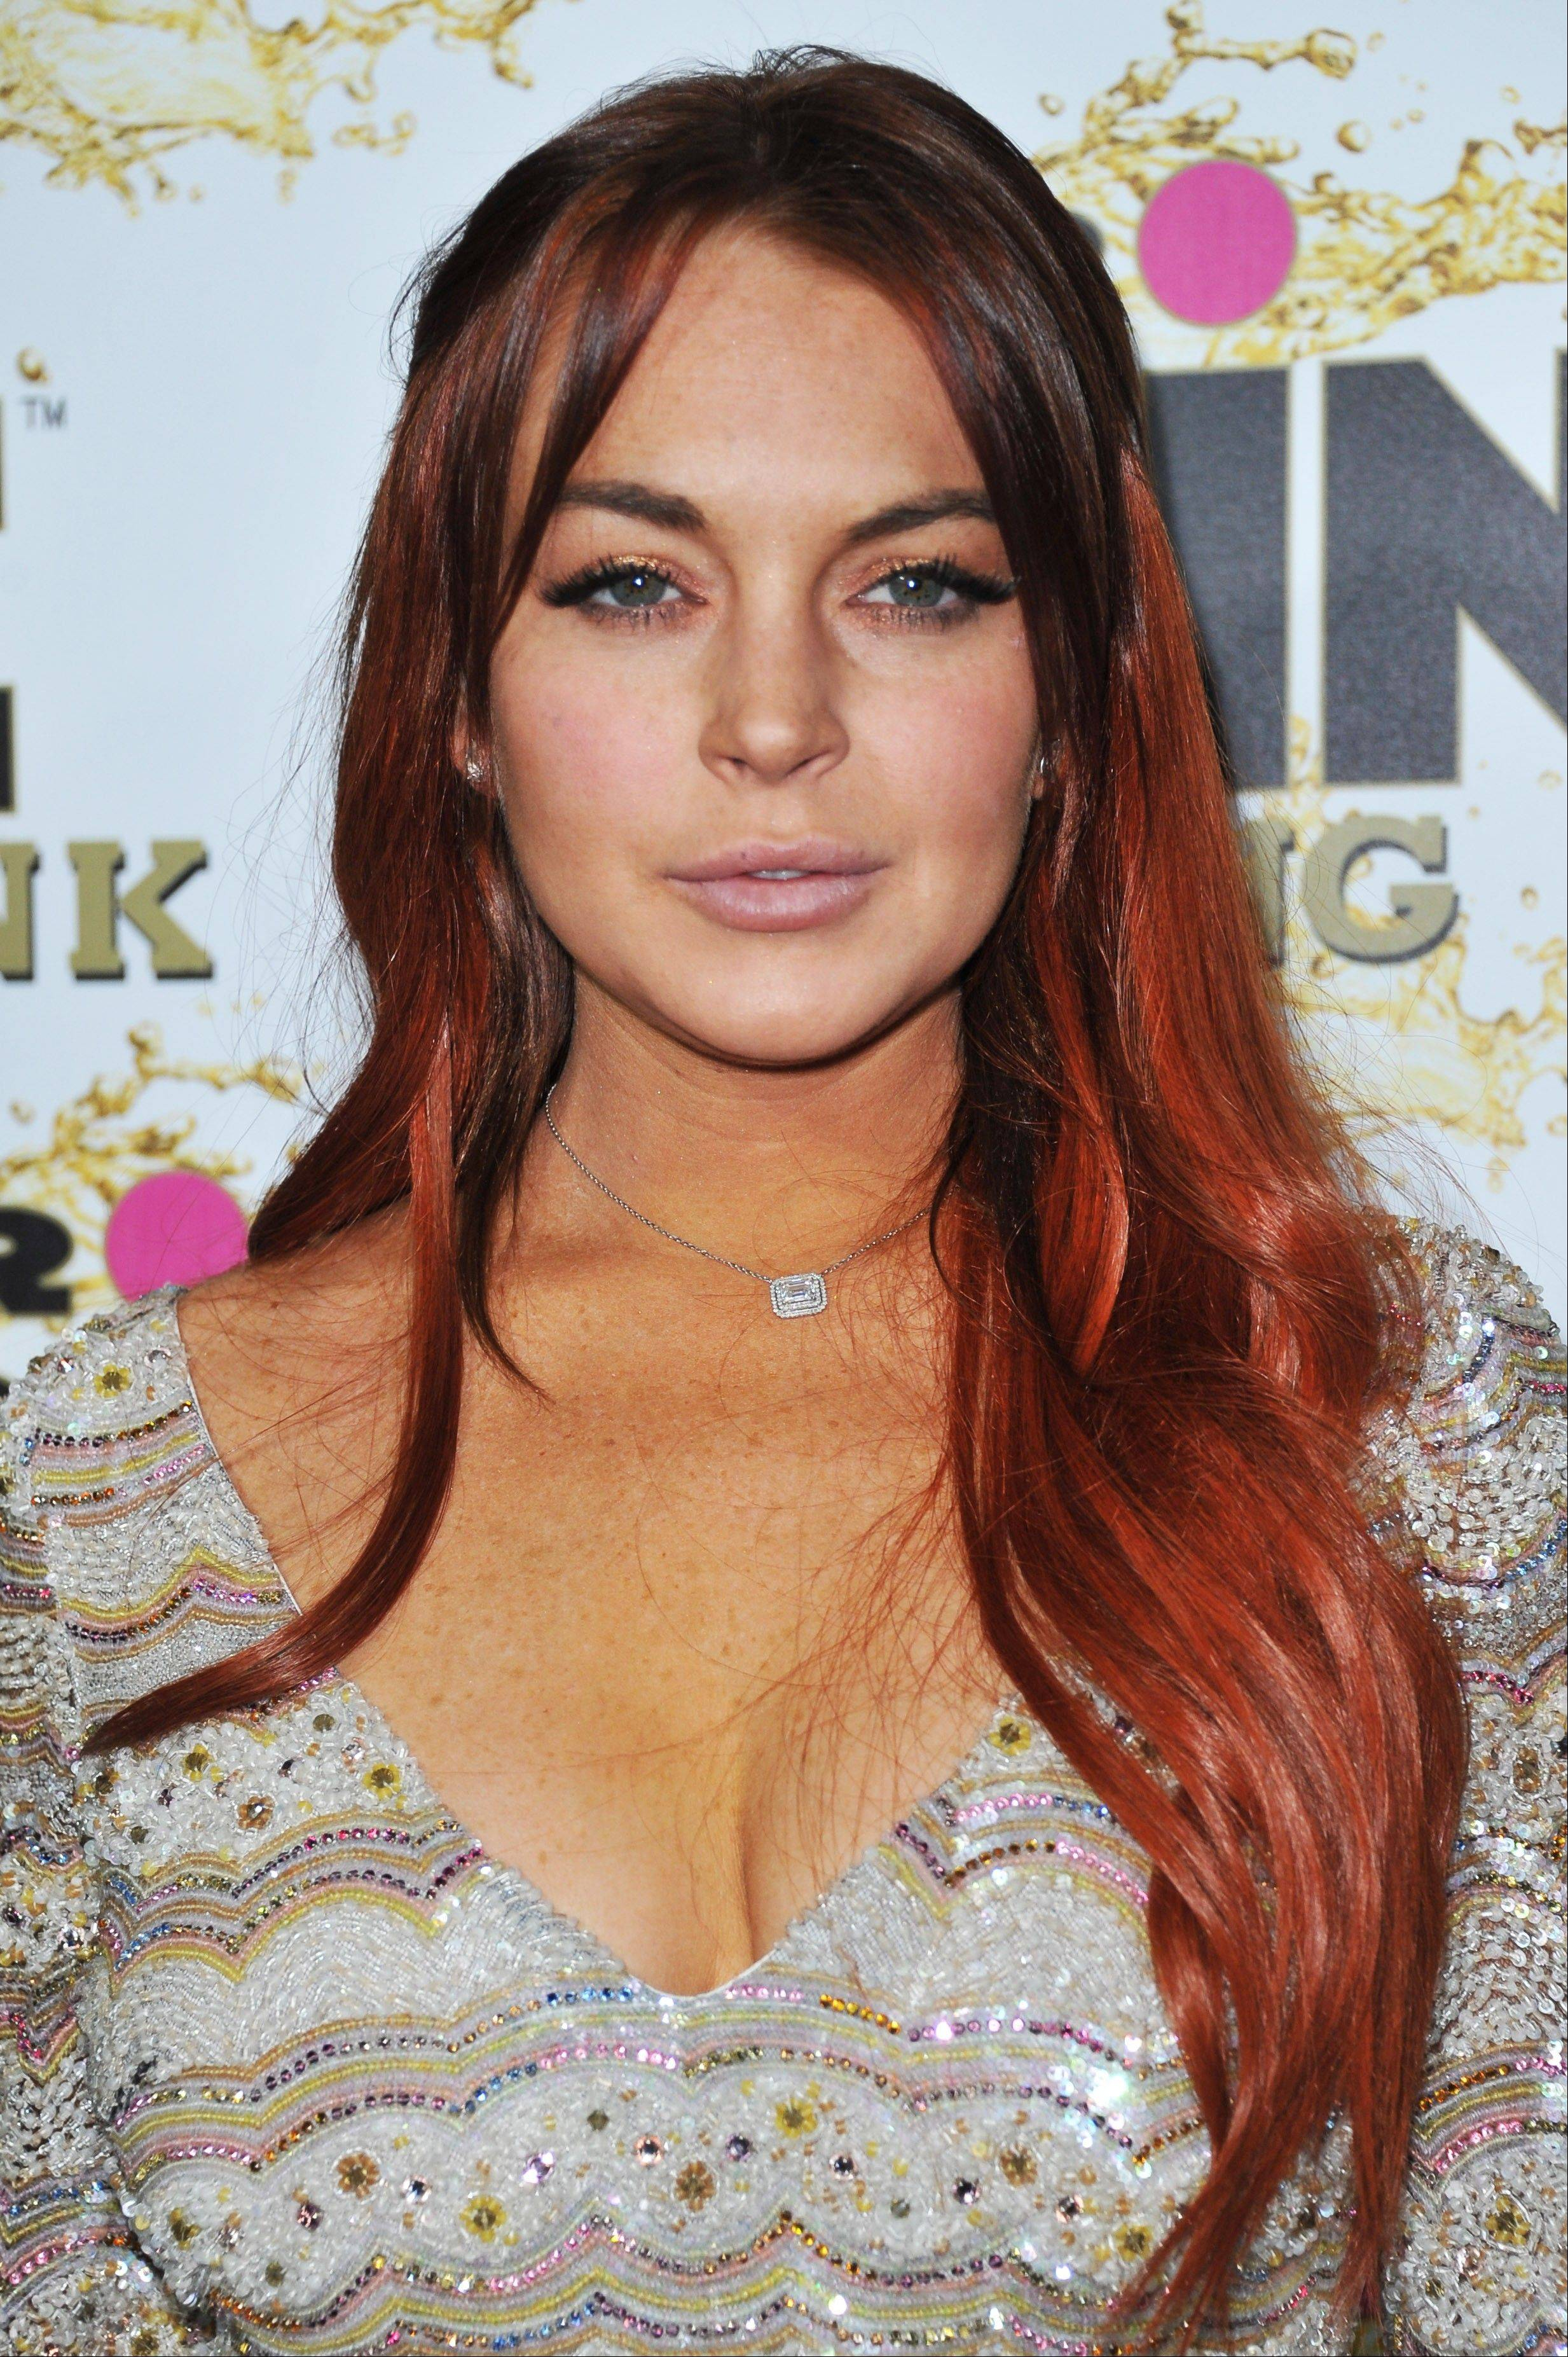 Lindsay Lohan is due to be arraigned on Wednesday on three misdemeanor charges filed after authorities say they determined the actress lied about being a passenger when her Porsche slammed into the back of a dump truck in June.